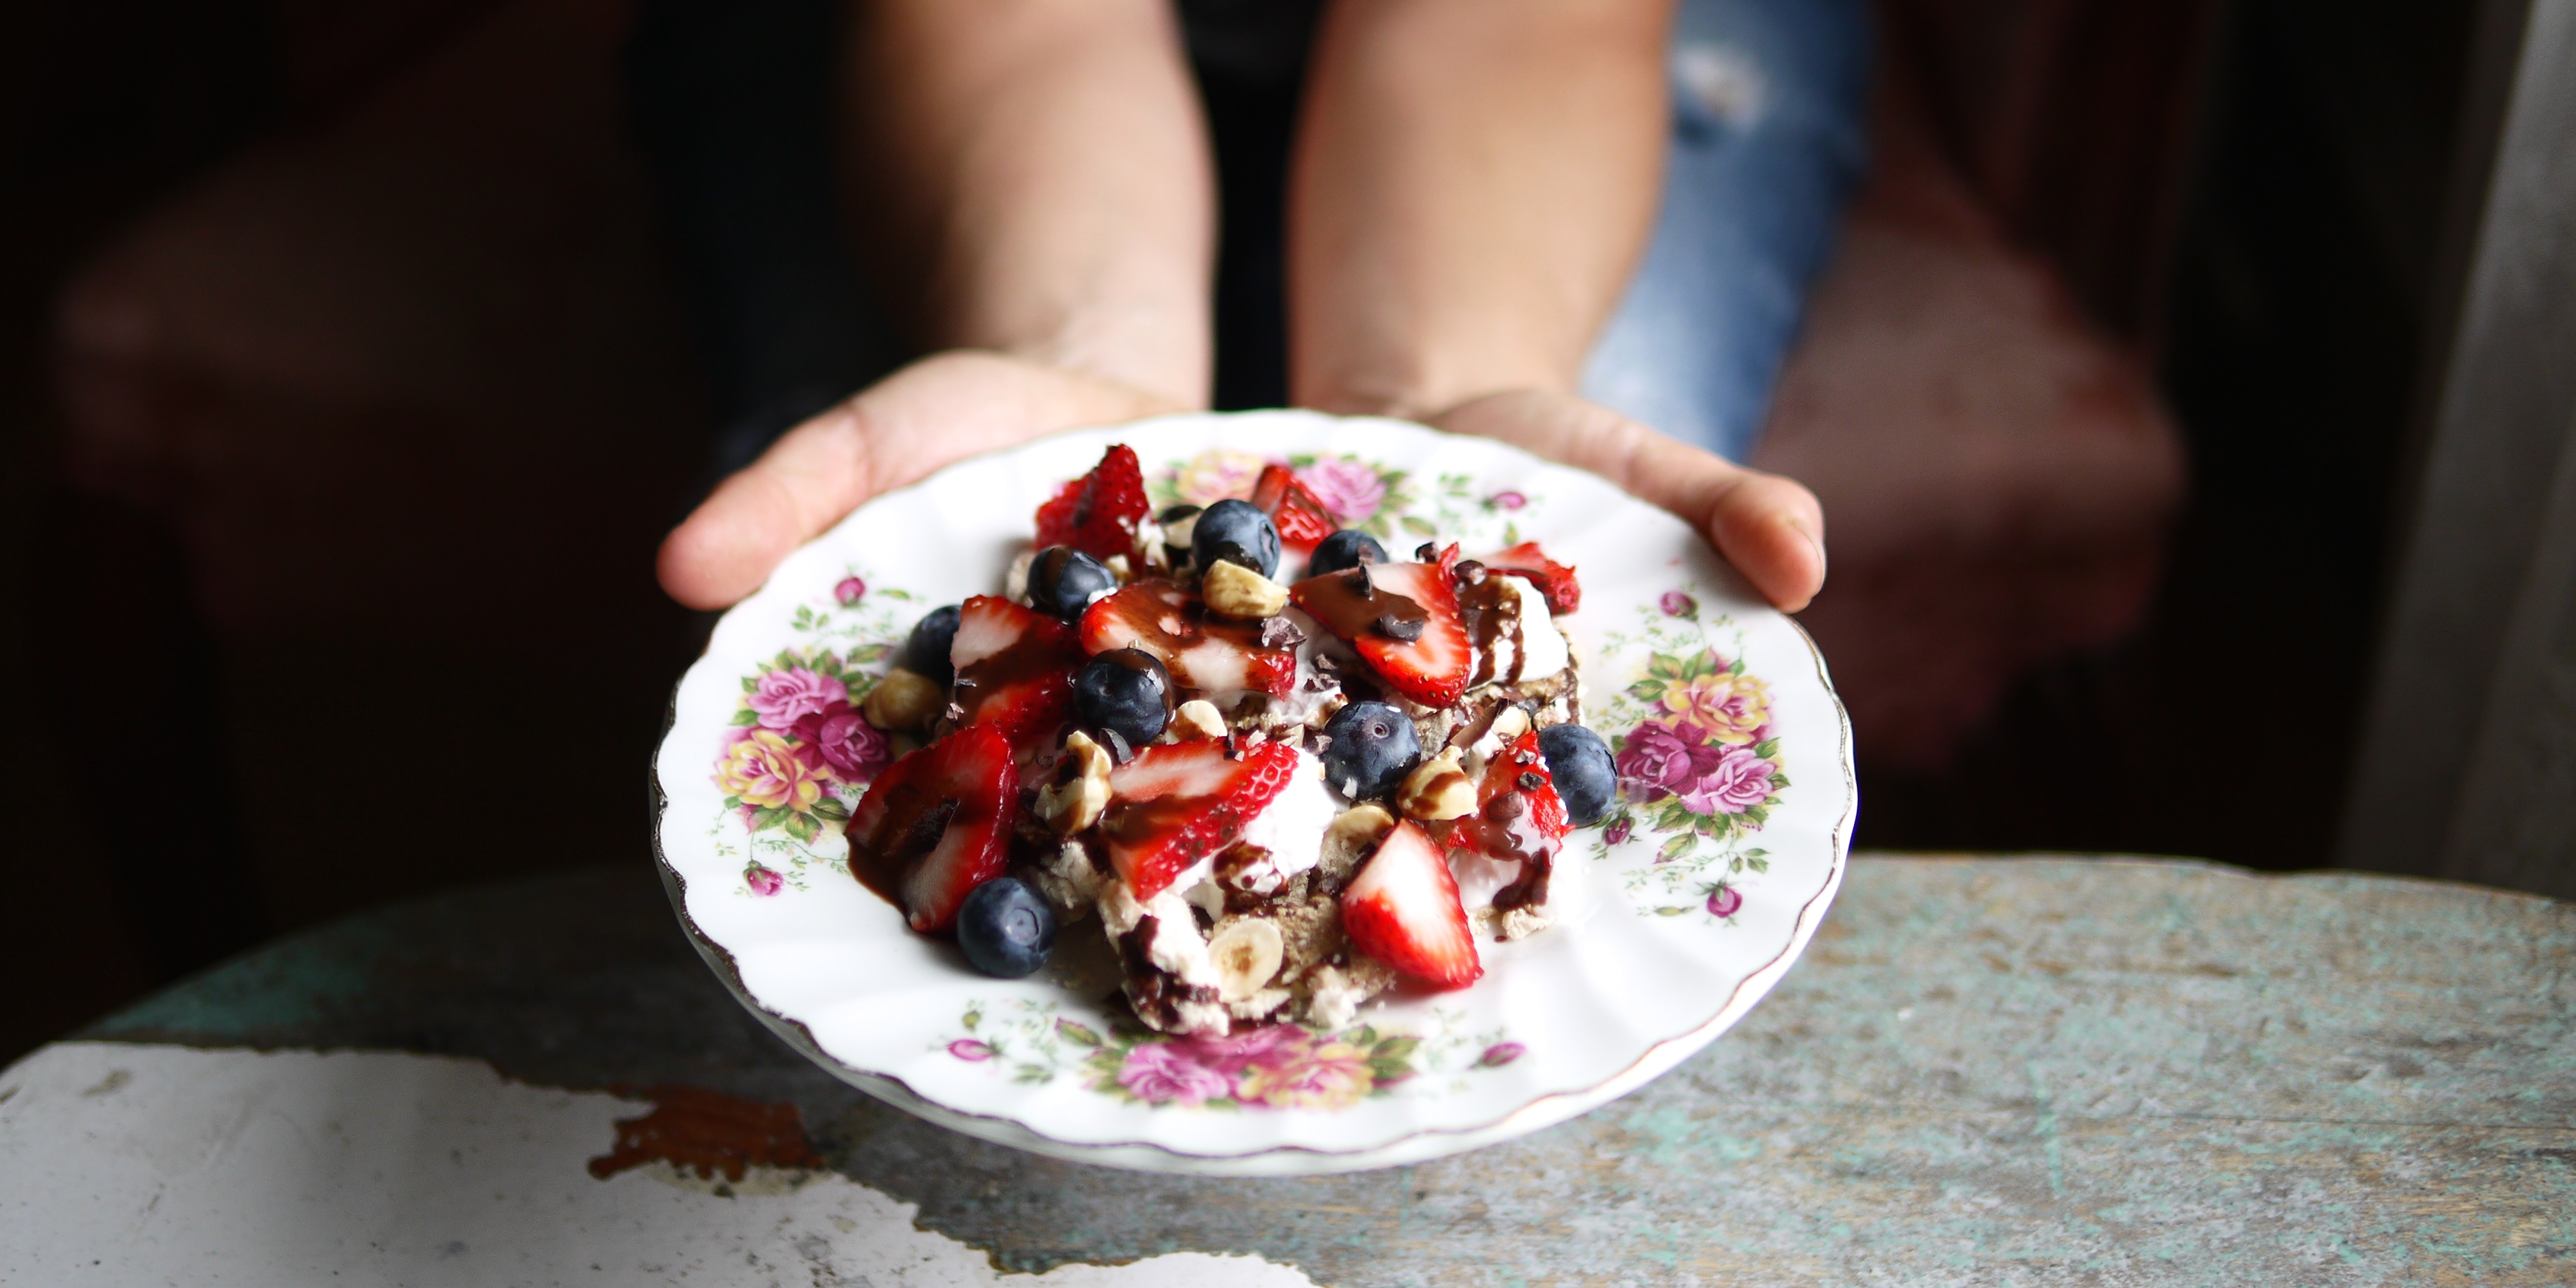 Vegan Pavlova with Berries and Chocolate | To Die For